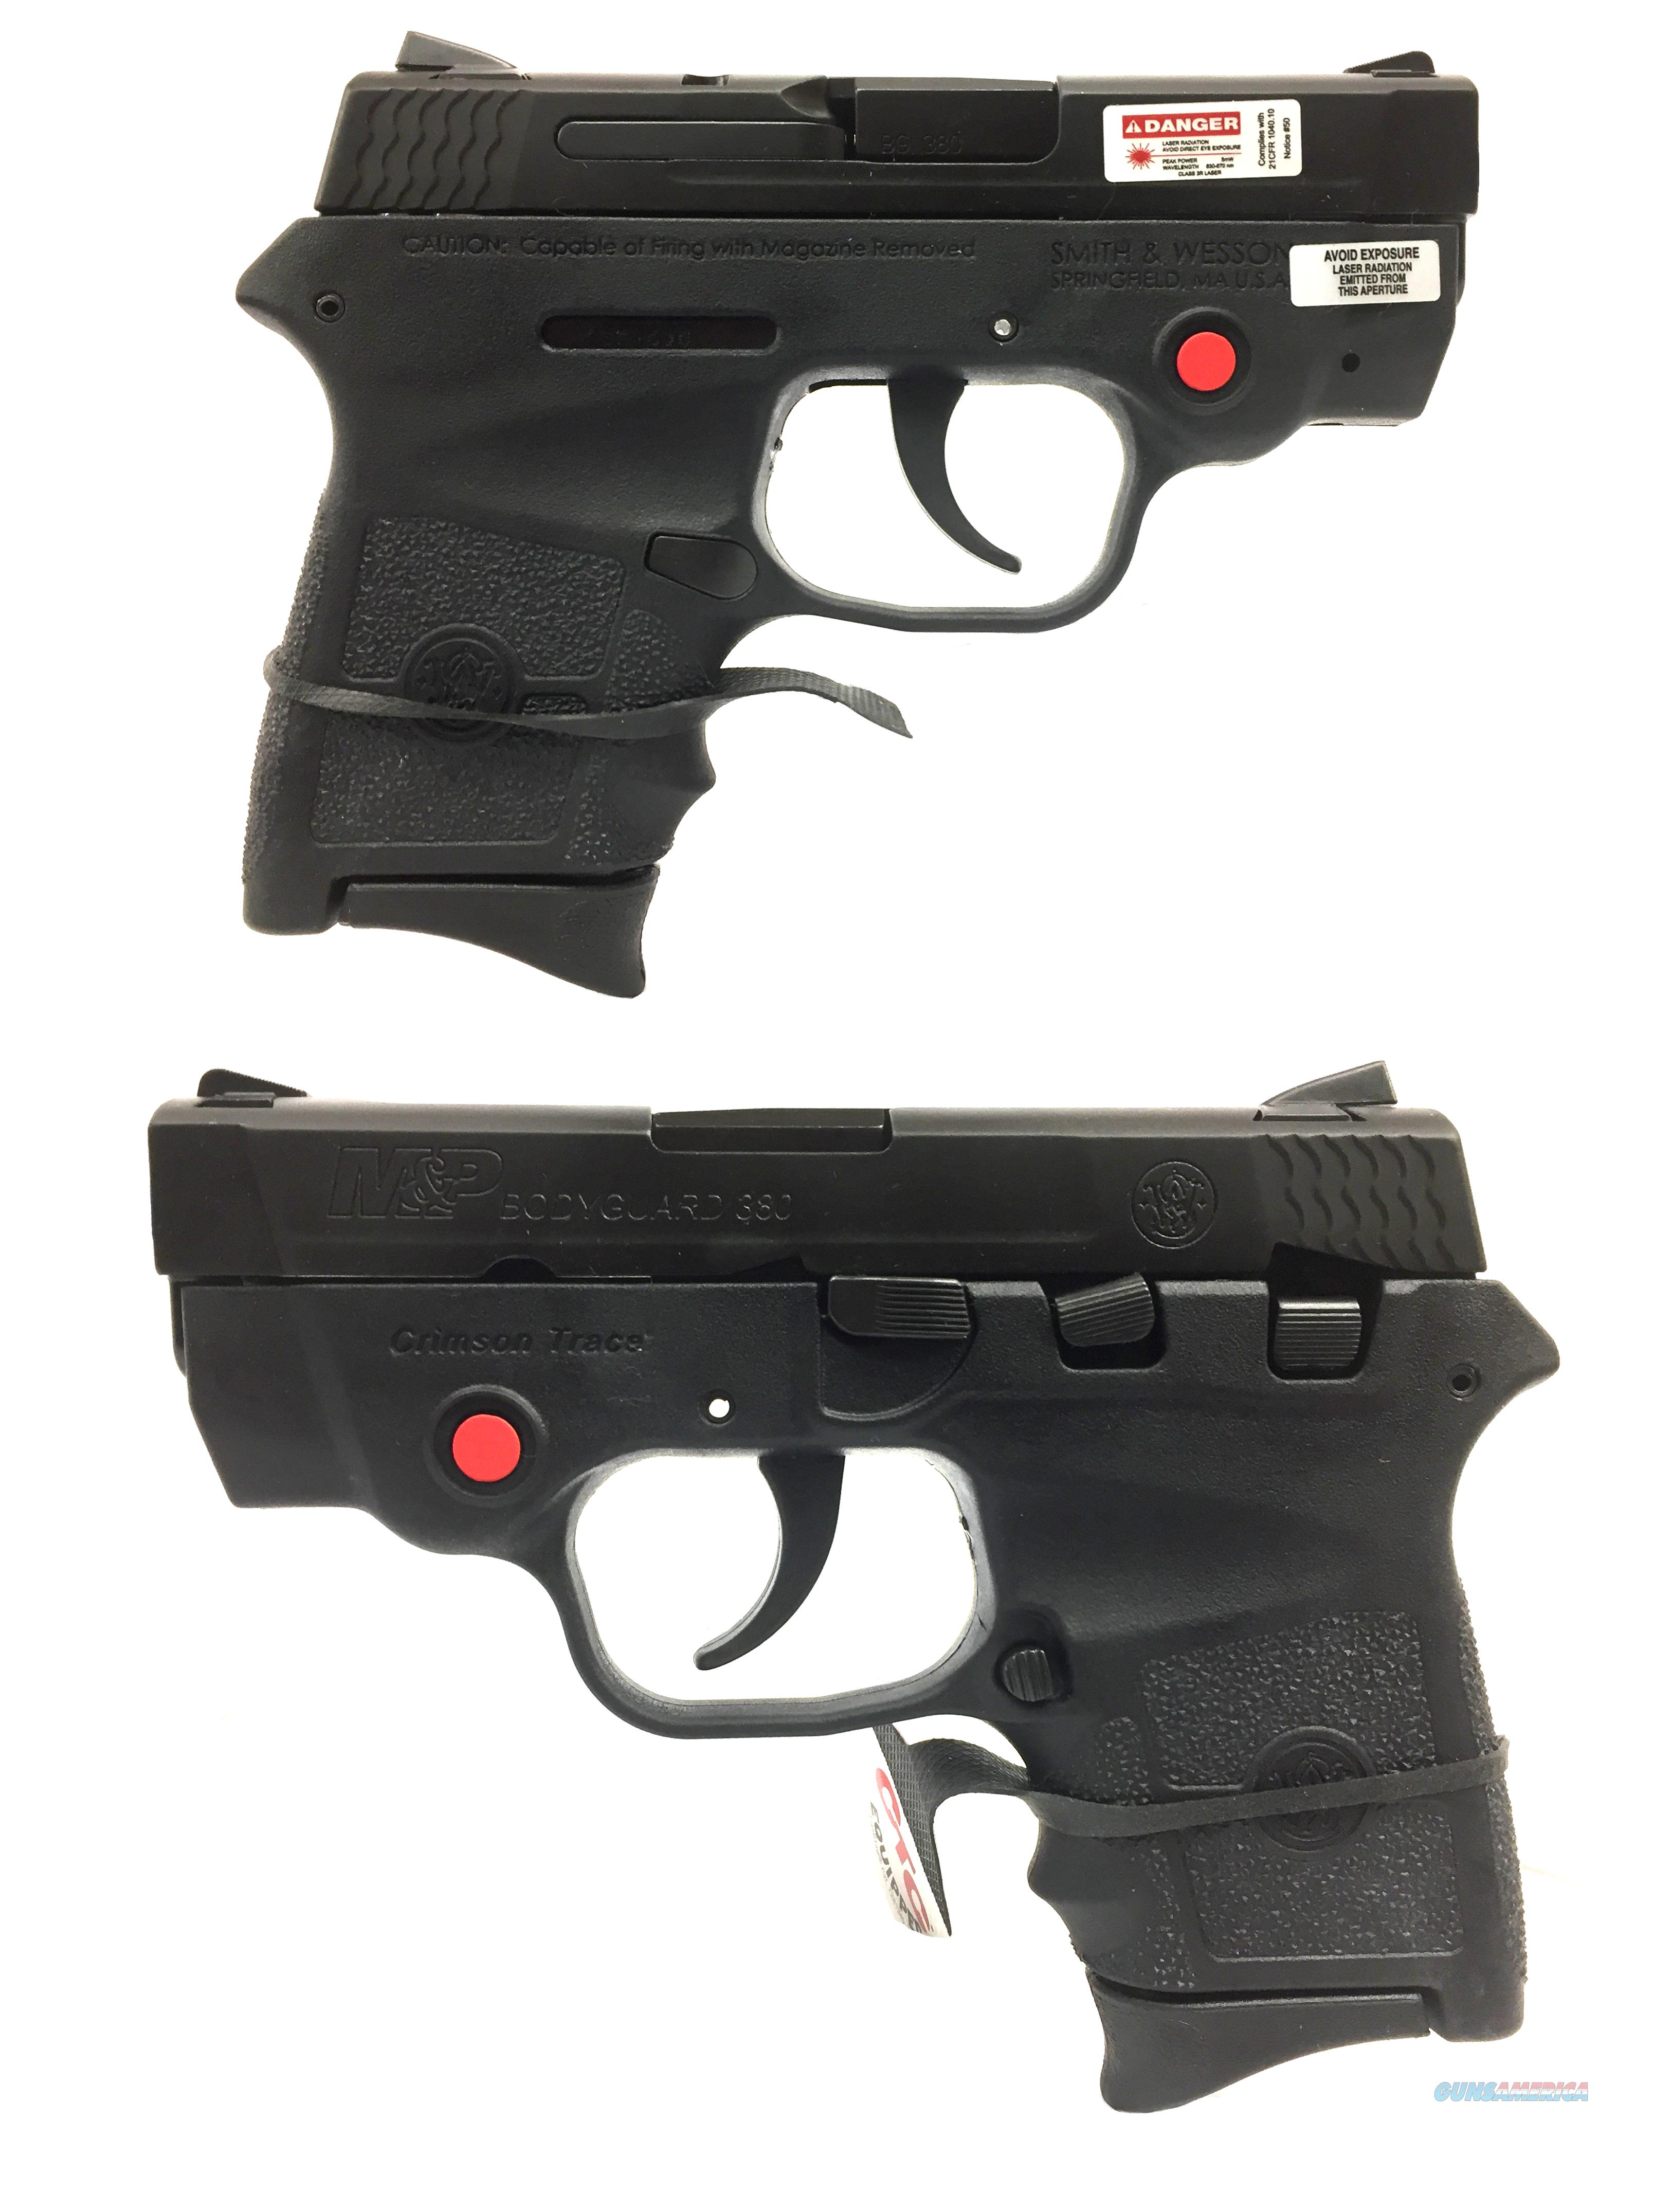 Smith & Wesson M&P .380 Bodyguard w/ Crimson Trace Laser  Guns > Pistols > Smith & Wesson Pistols - Autos > Polymer Frame